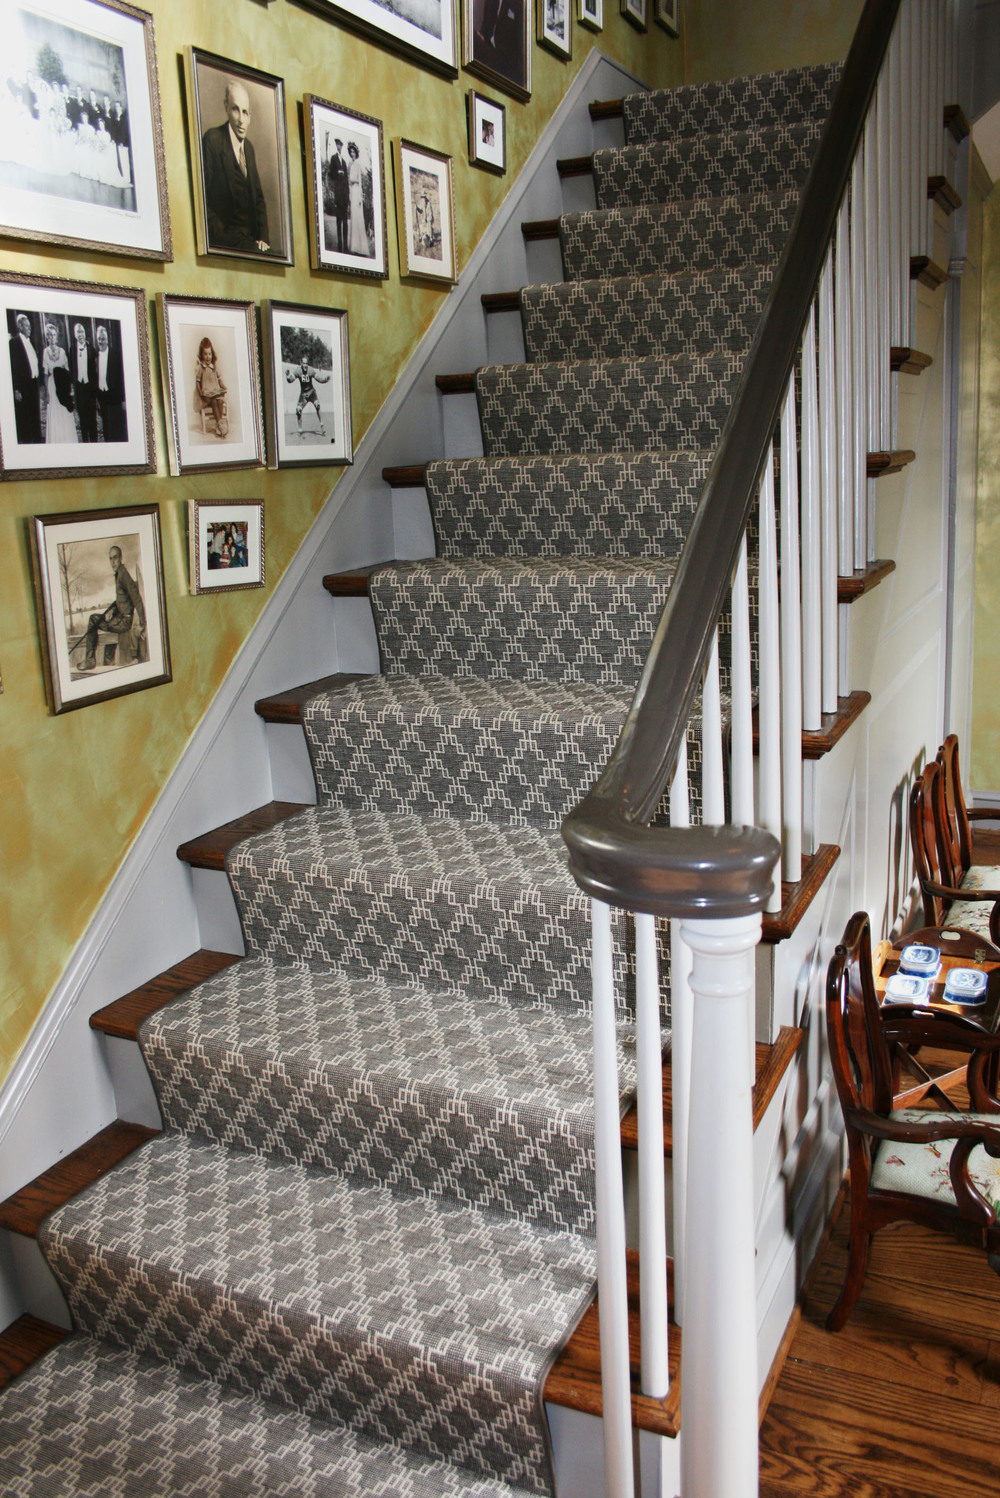 This image features a flat woven stair runner that was custom installed.